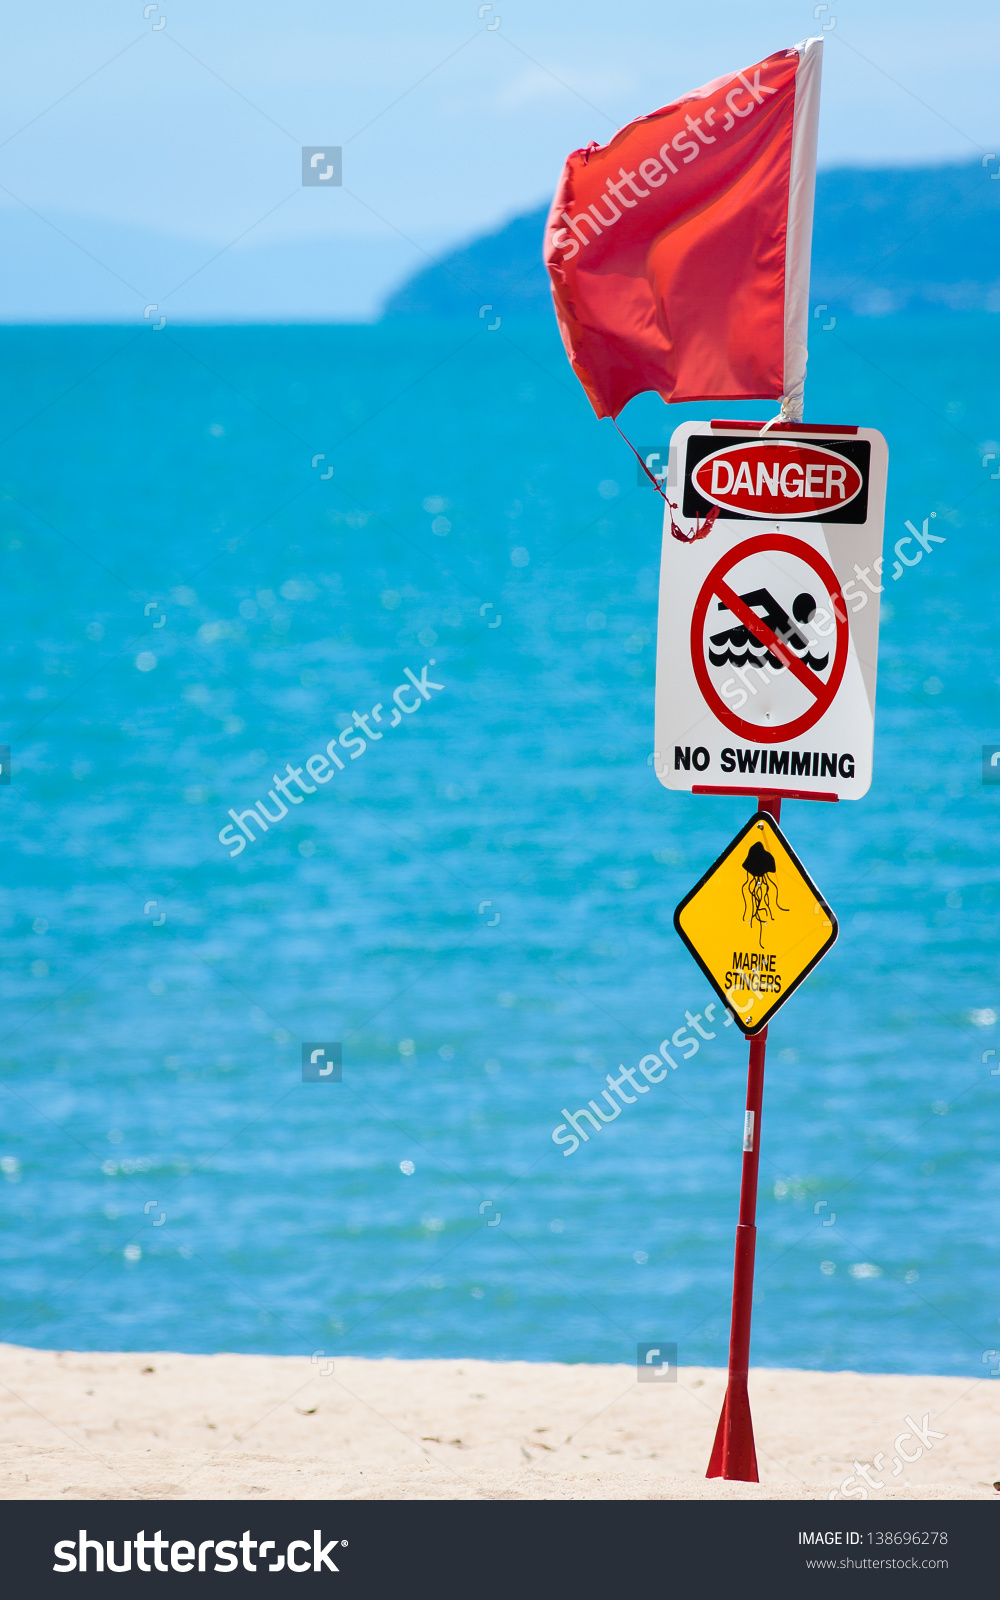 Closeup Jellyfish Marine Stinger Warning Sign Stock Photo.